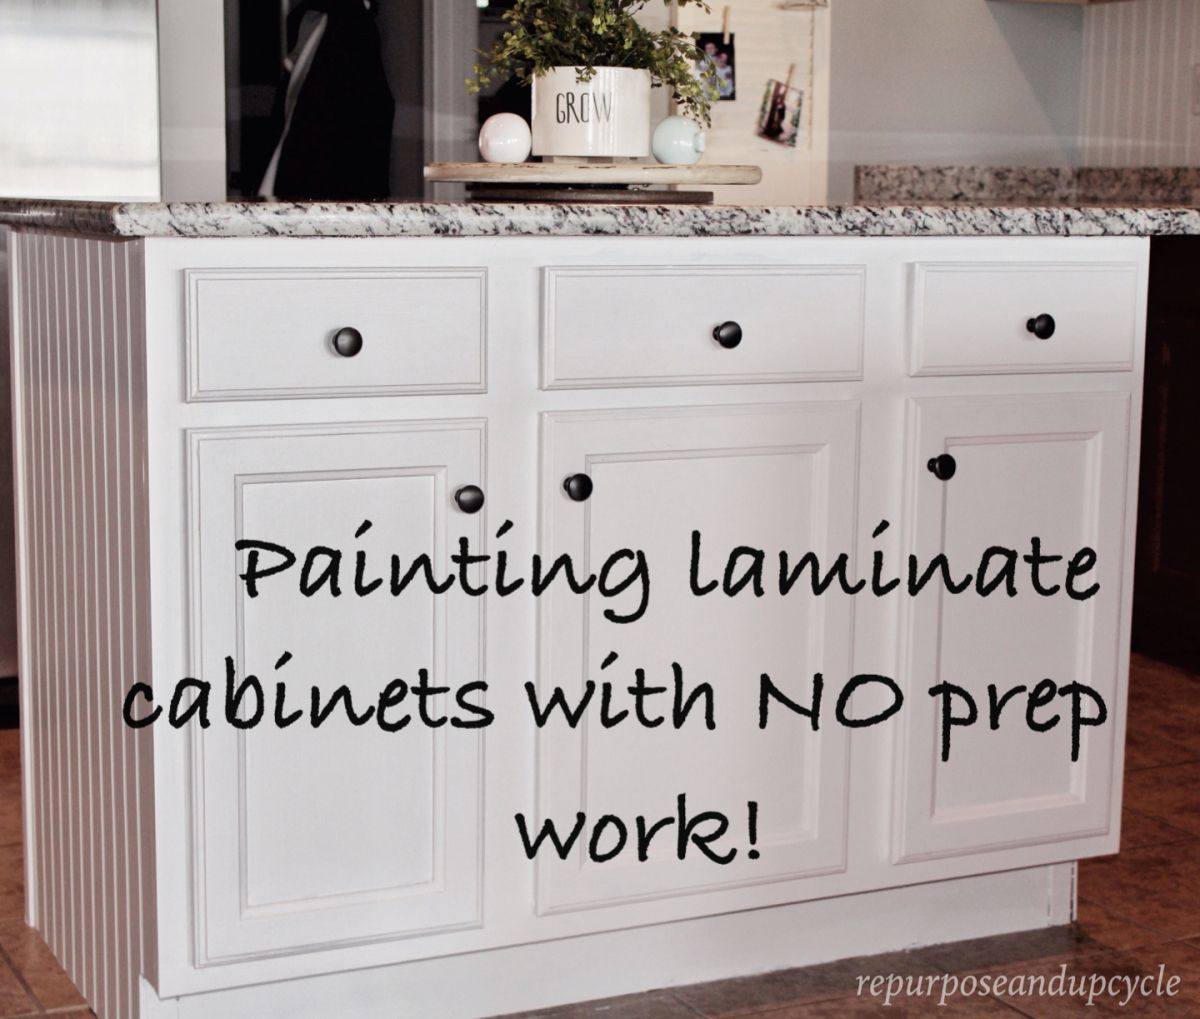 Refinishing Laminate Bathroom Cabinet Door: Painting Laminate Cabinets With No Prep Work